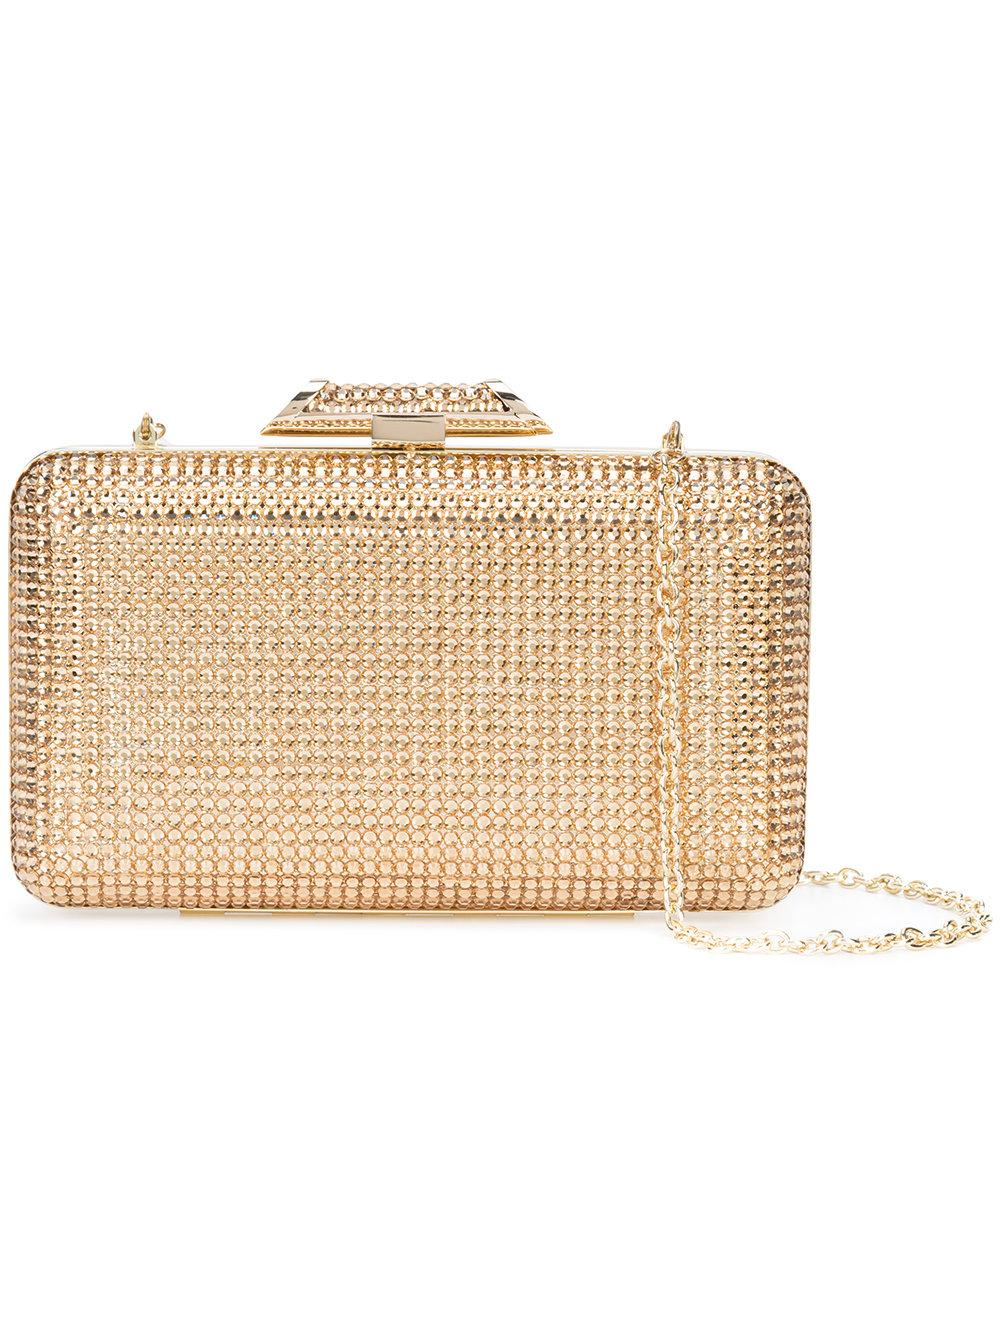 Jacqueline Metallic Box Clutch